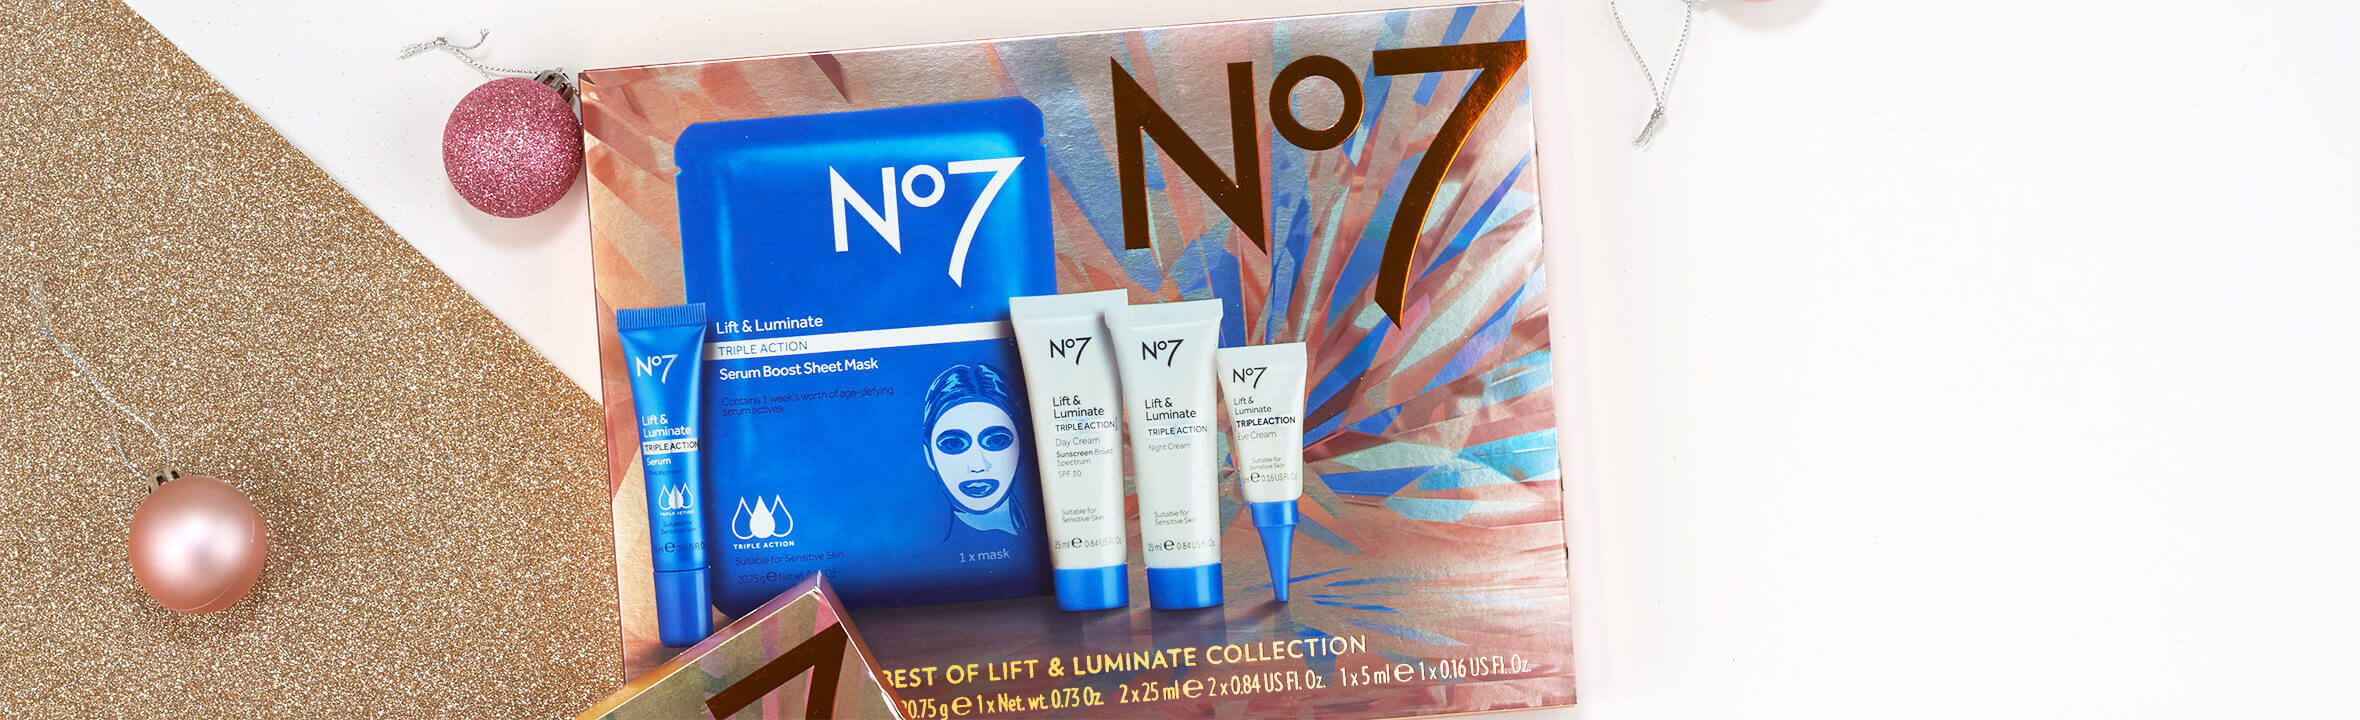 No.7 Lift & Luminate Holiday Gift Set